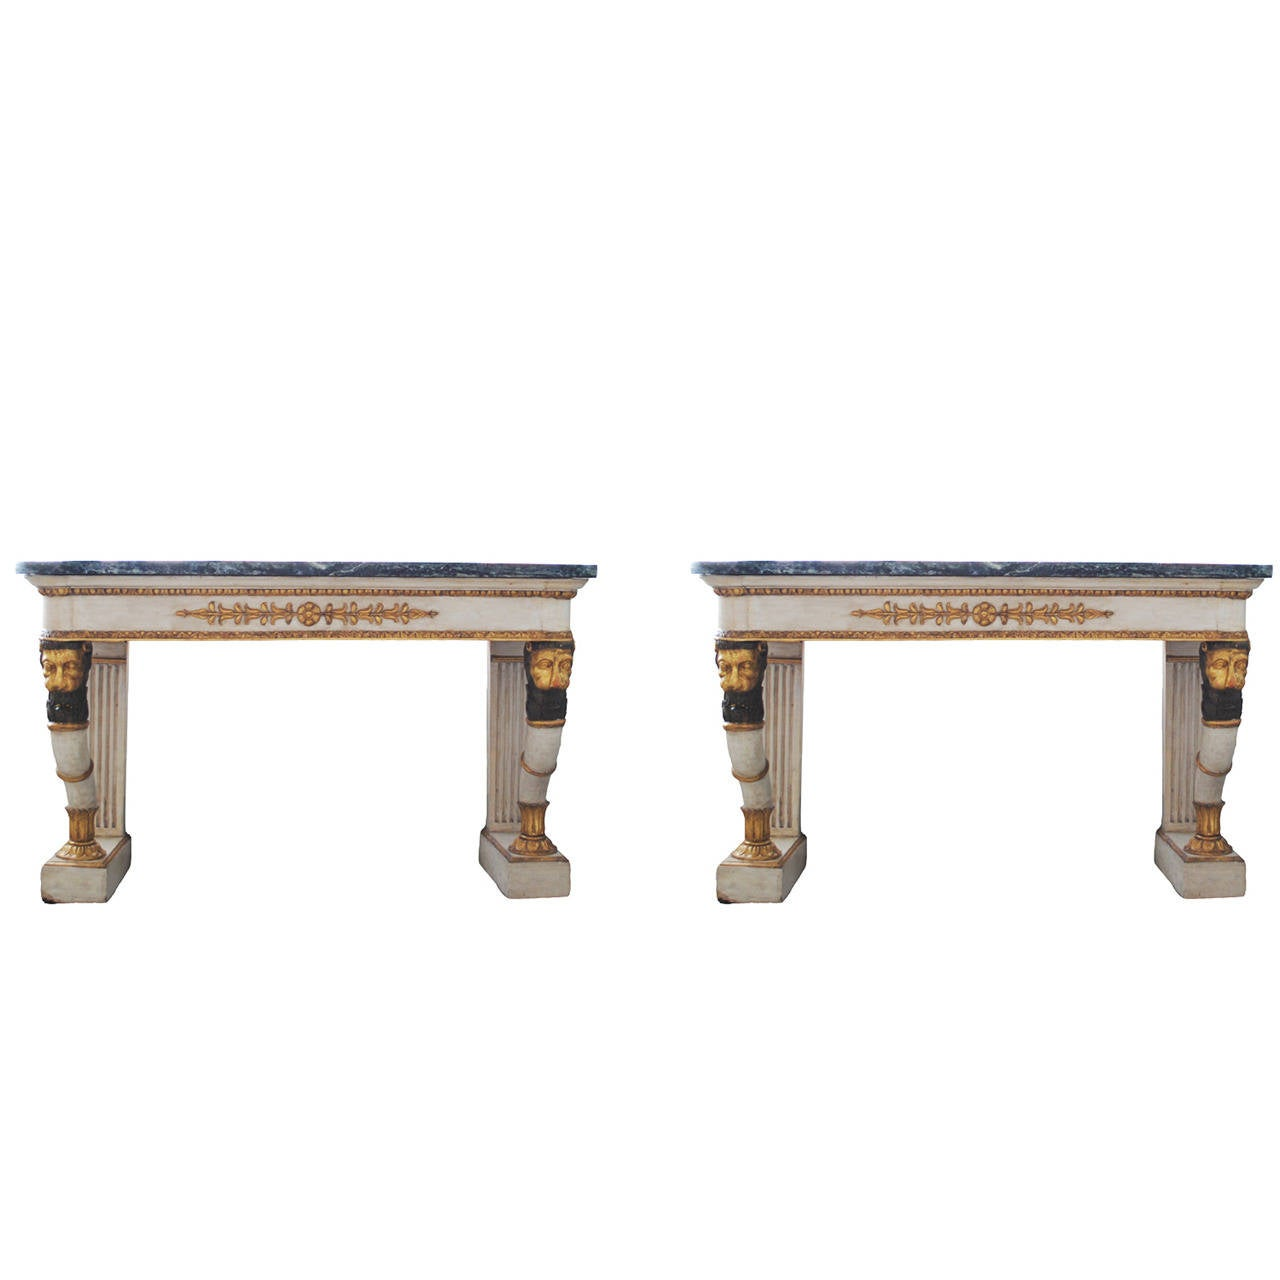 Pair of Neoclassical Painted and Parcel-Gilt Consoles